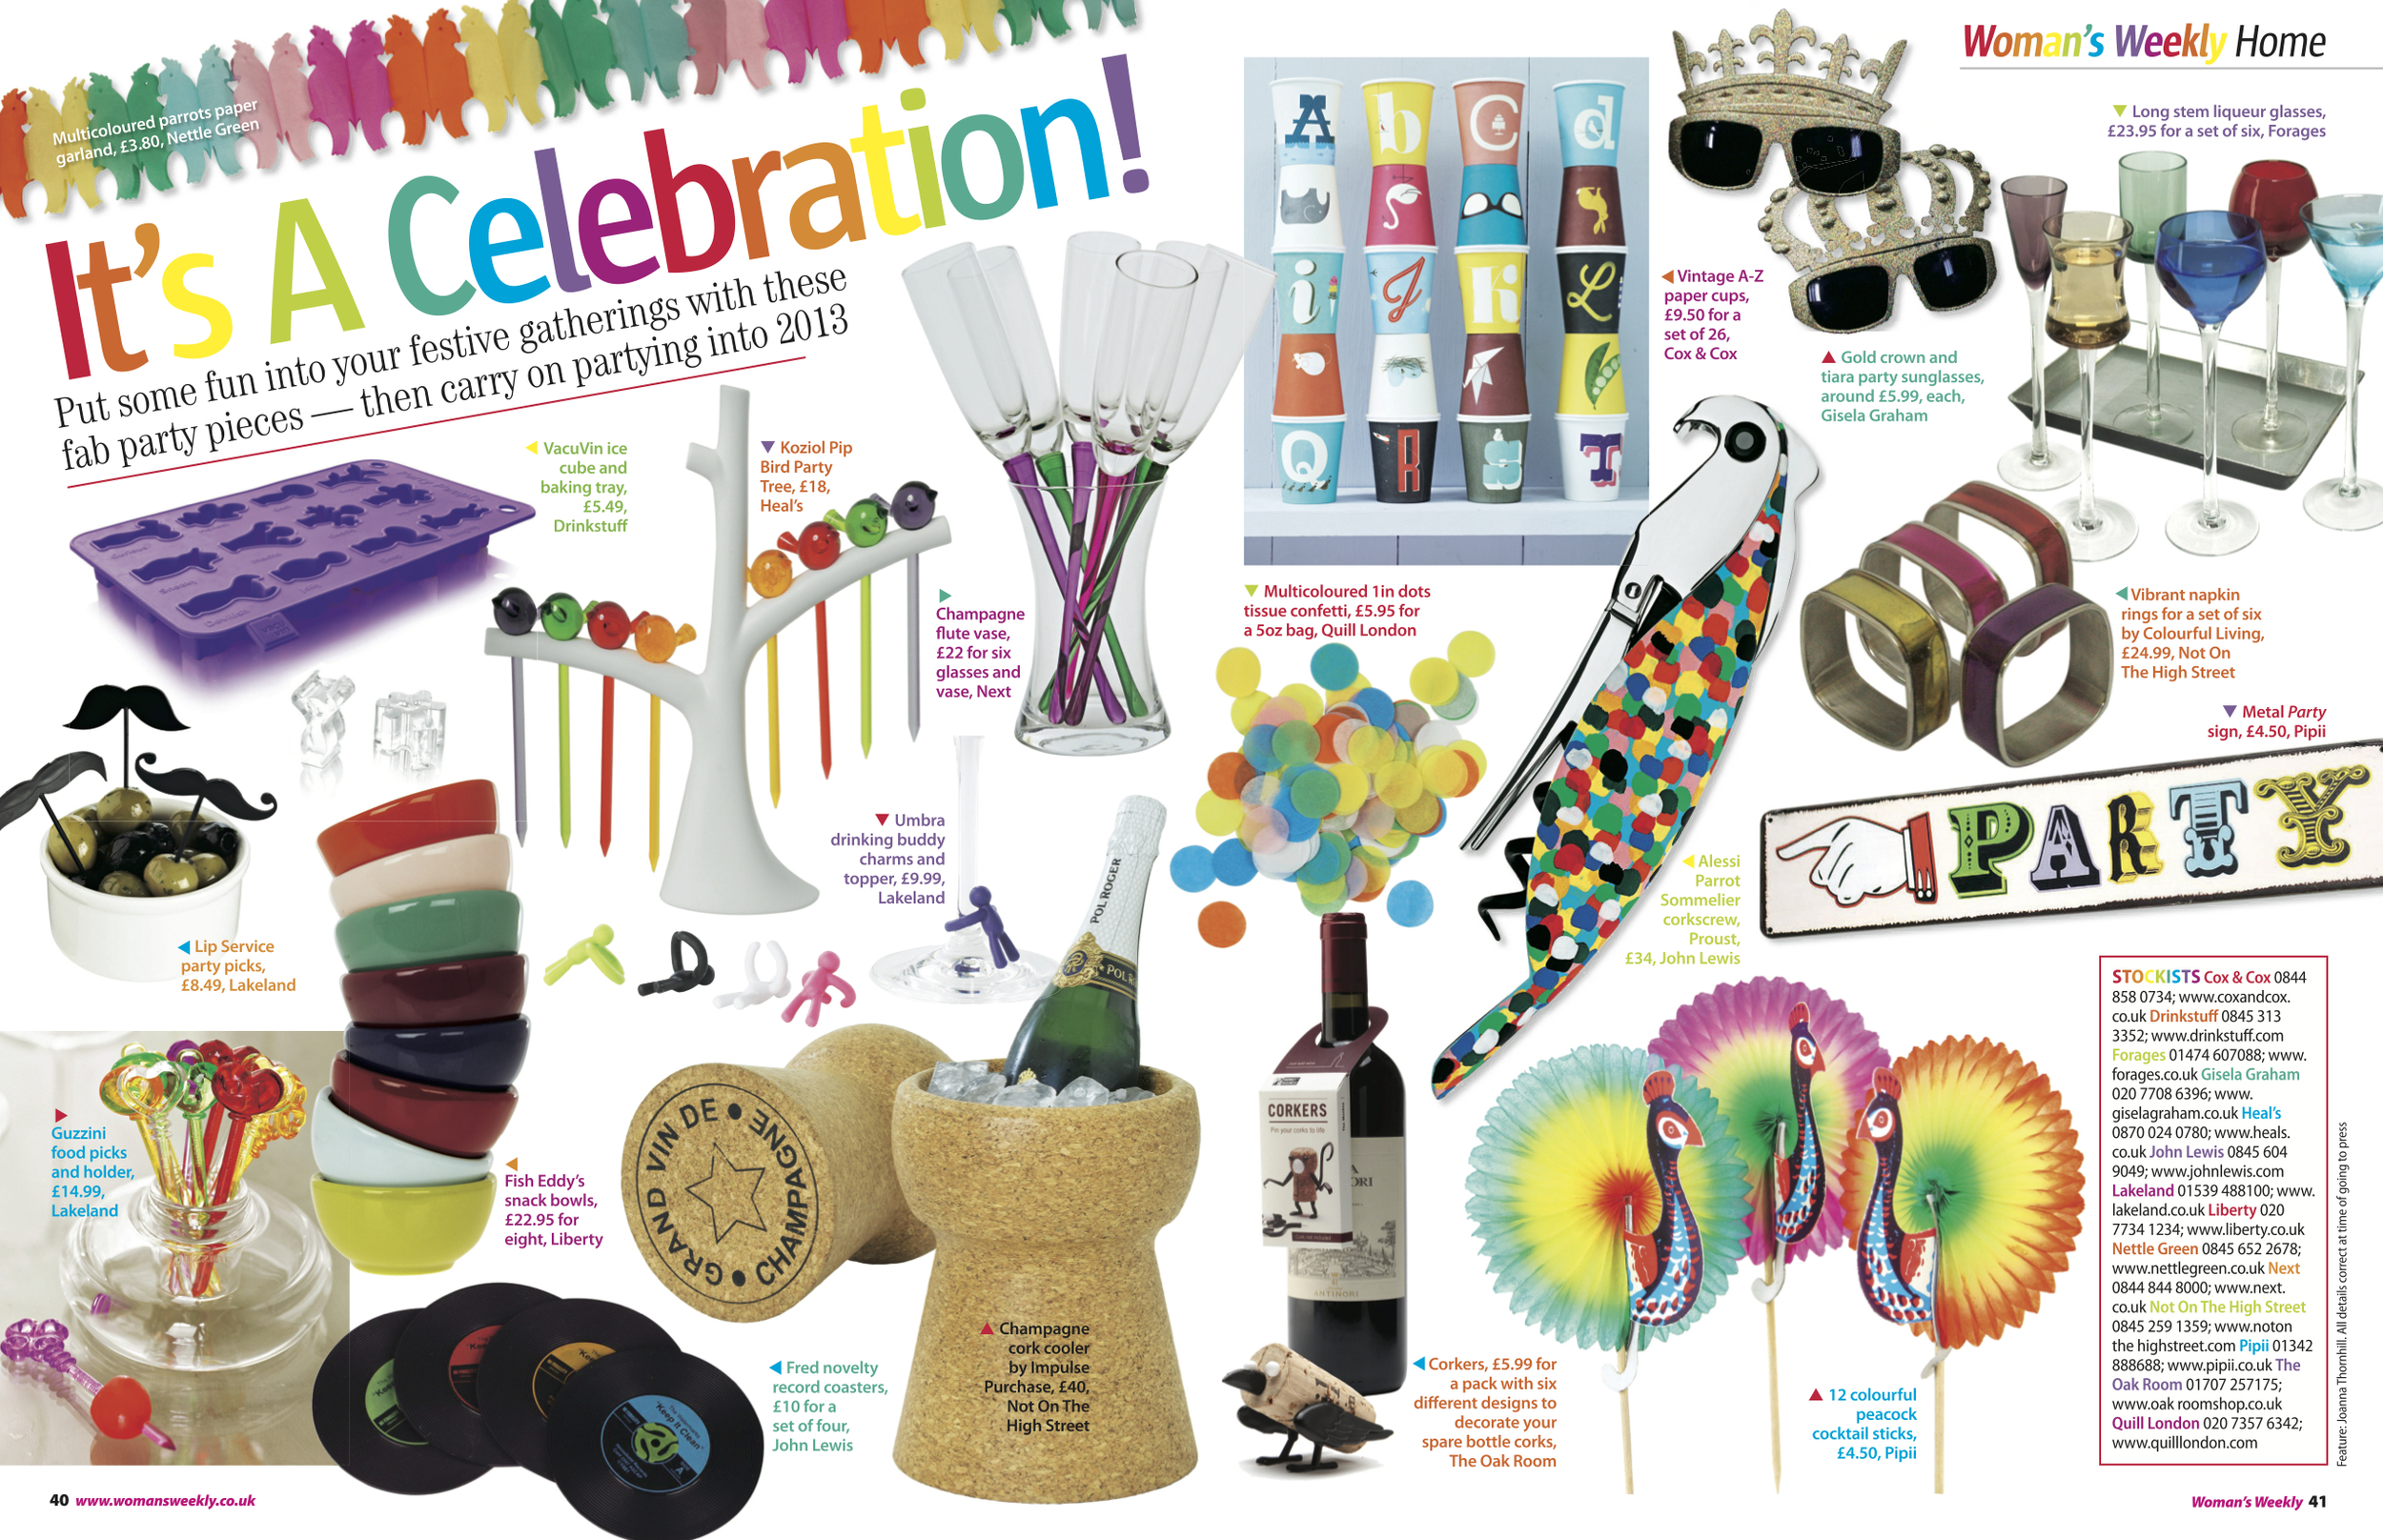 22. Woman's Weekly It's a Celebration feature by Interior Stylist Joanna Thornhill.jpeg